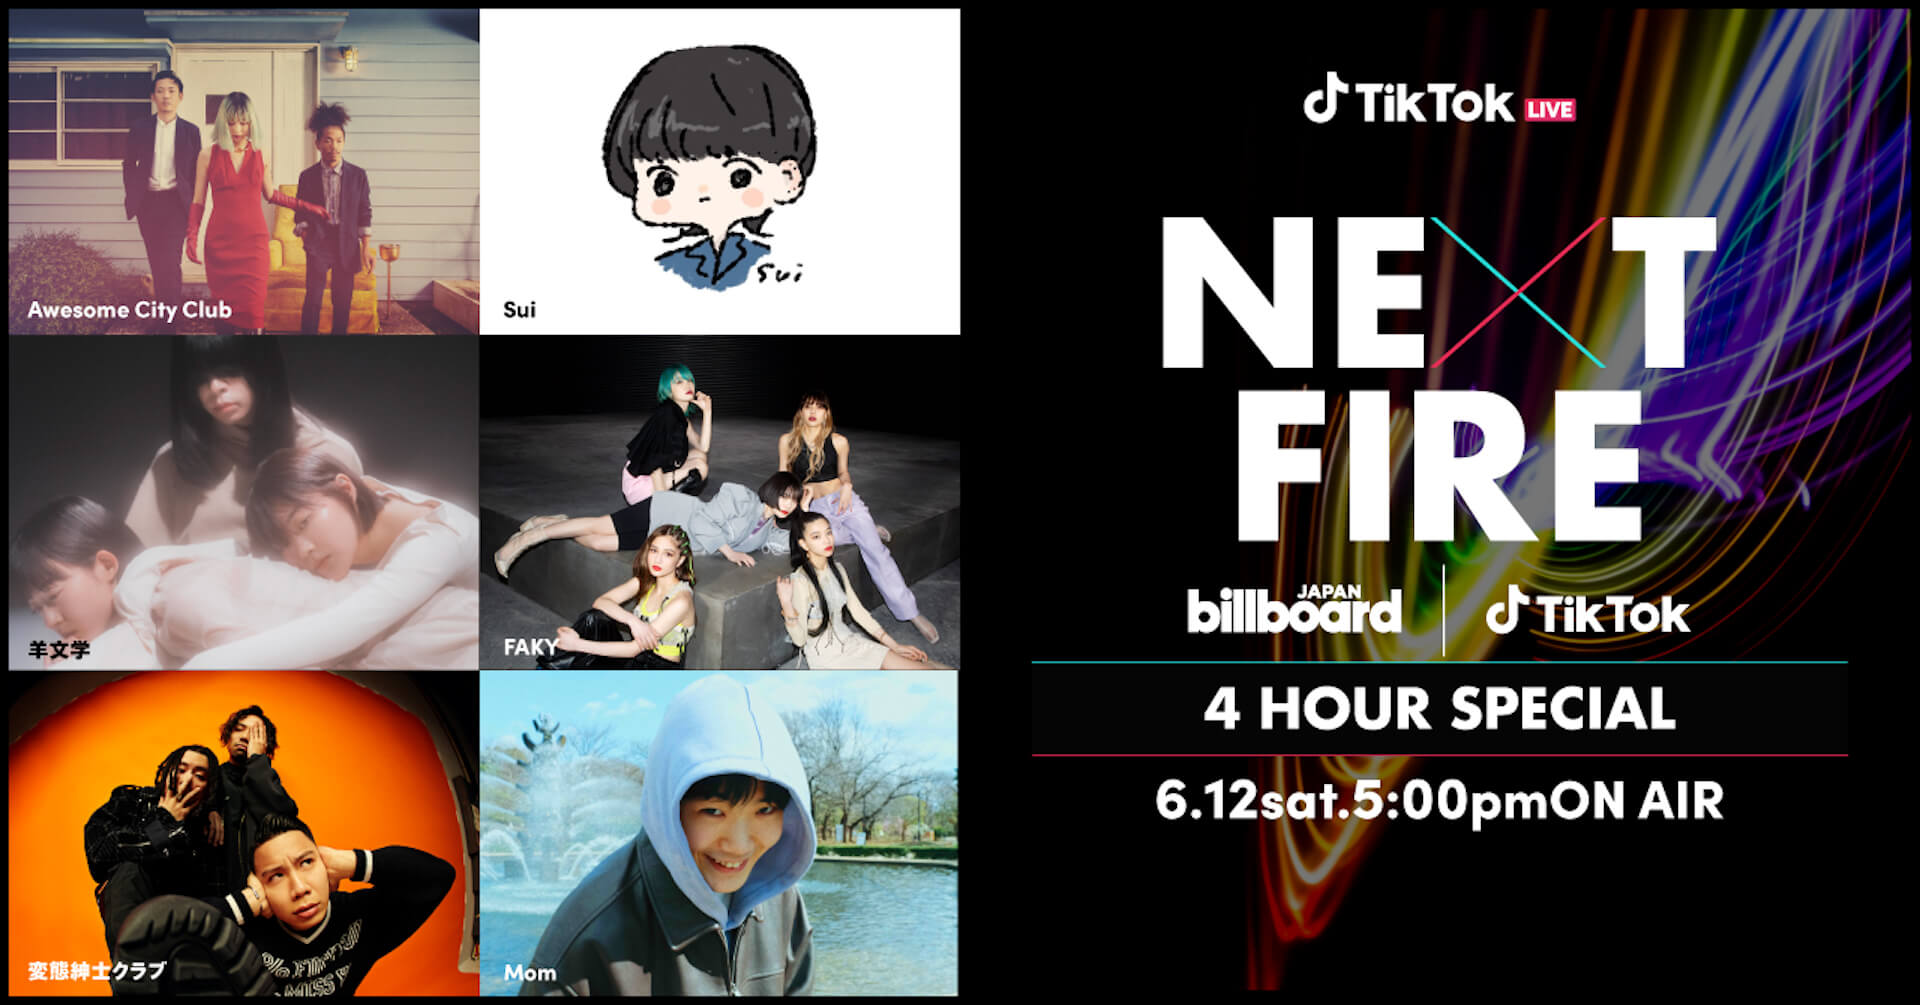 Awesome City Club、sui、羊文学、FAKY、変態紳士クラブ、MomがBillboard JAPANとTikTokによる番組『NEXT FIRE 4 HOUR SPECIAL』に出演決定! music210524_next-fire-4-hour-special-210524_11